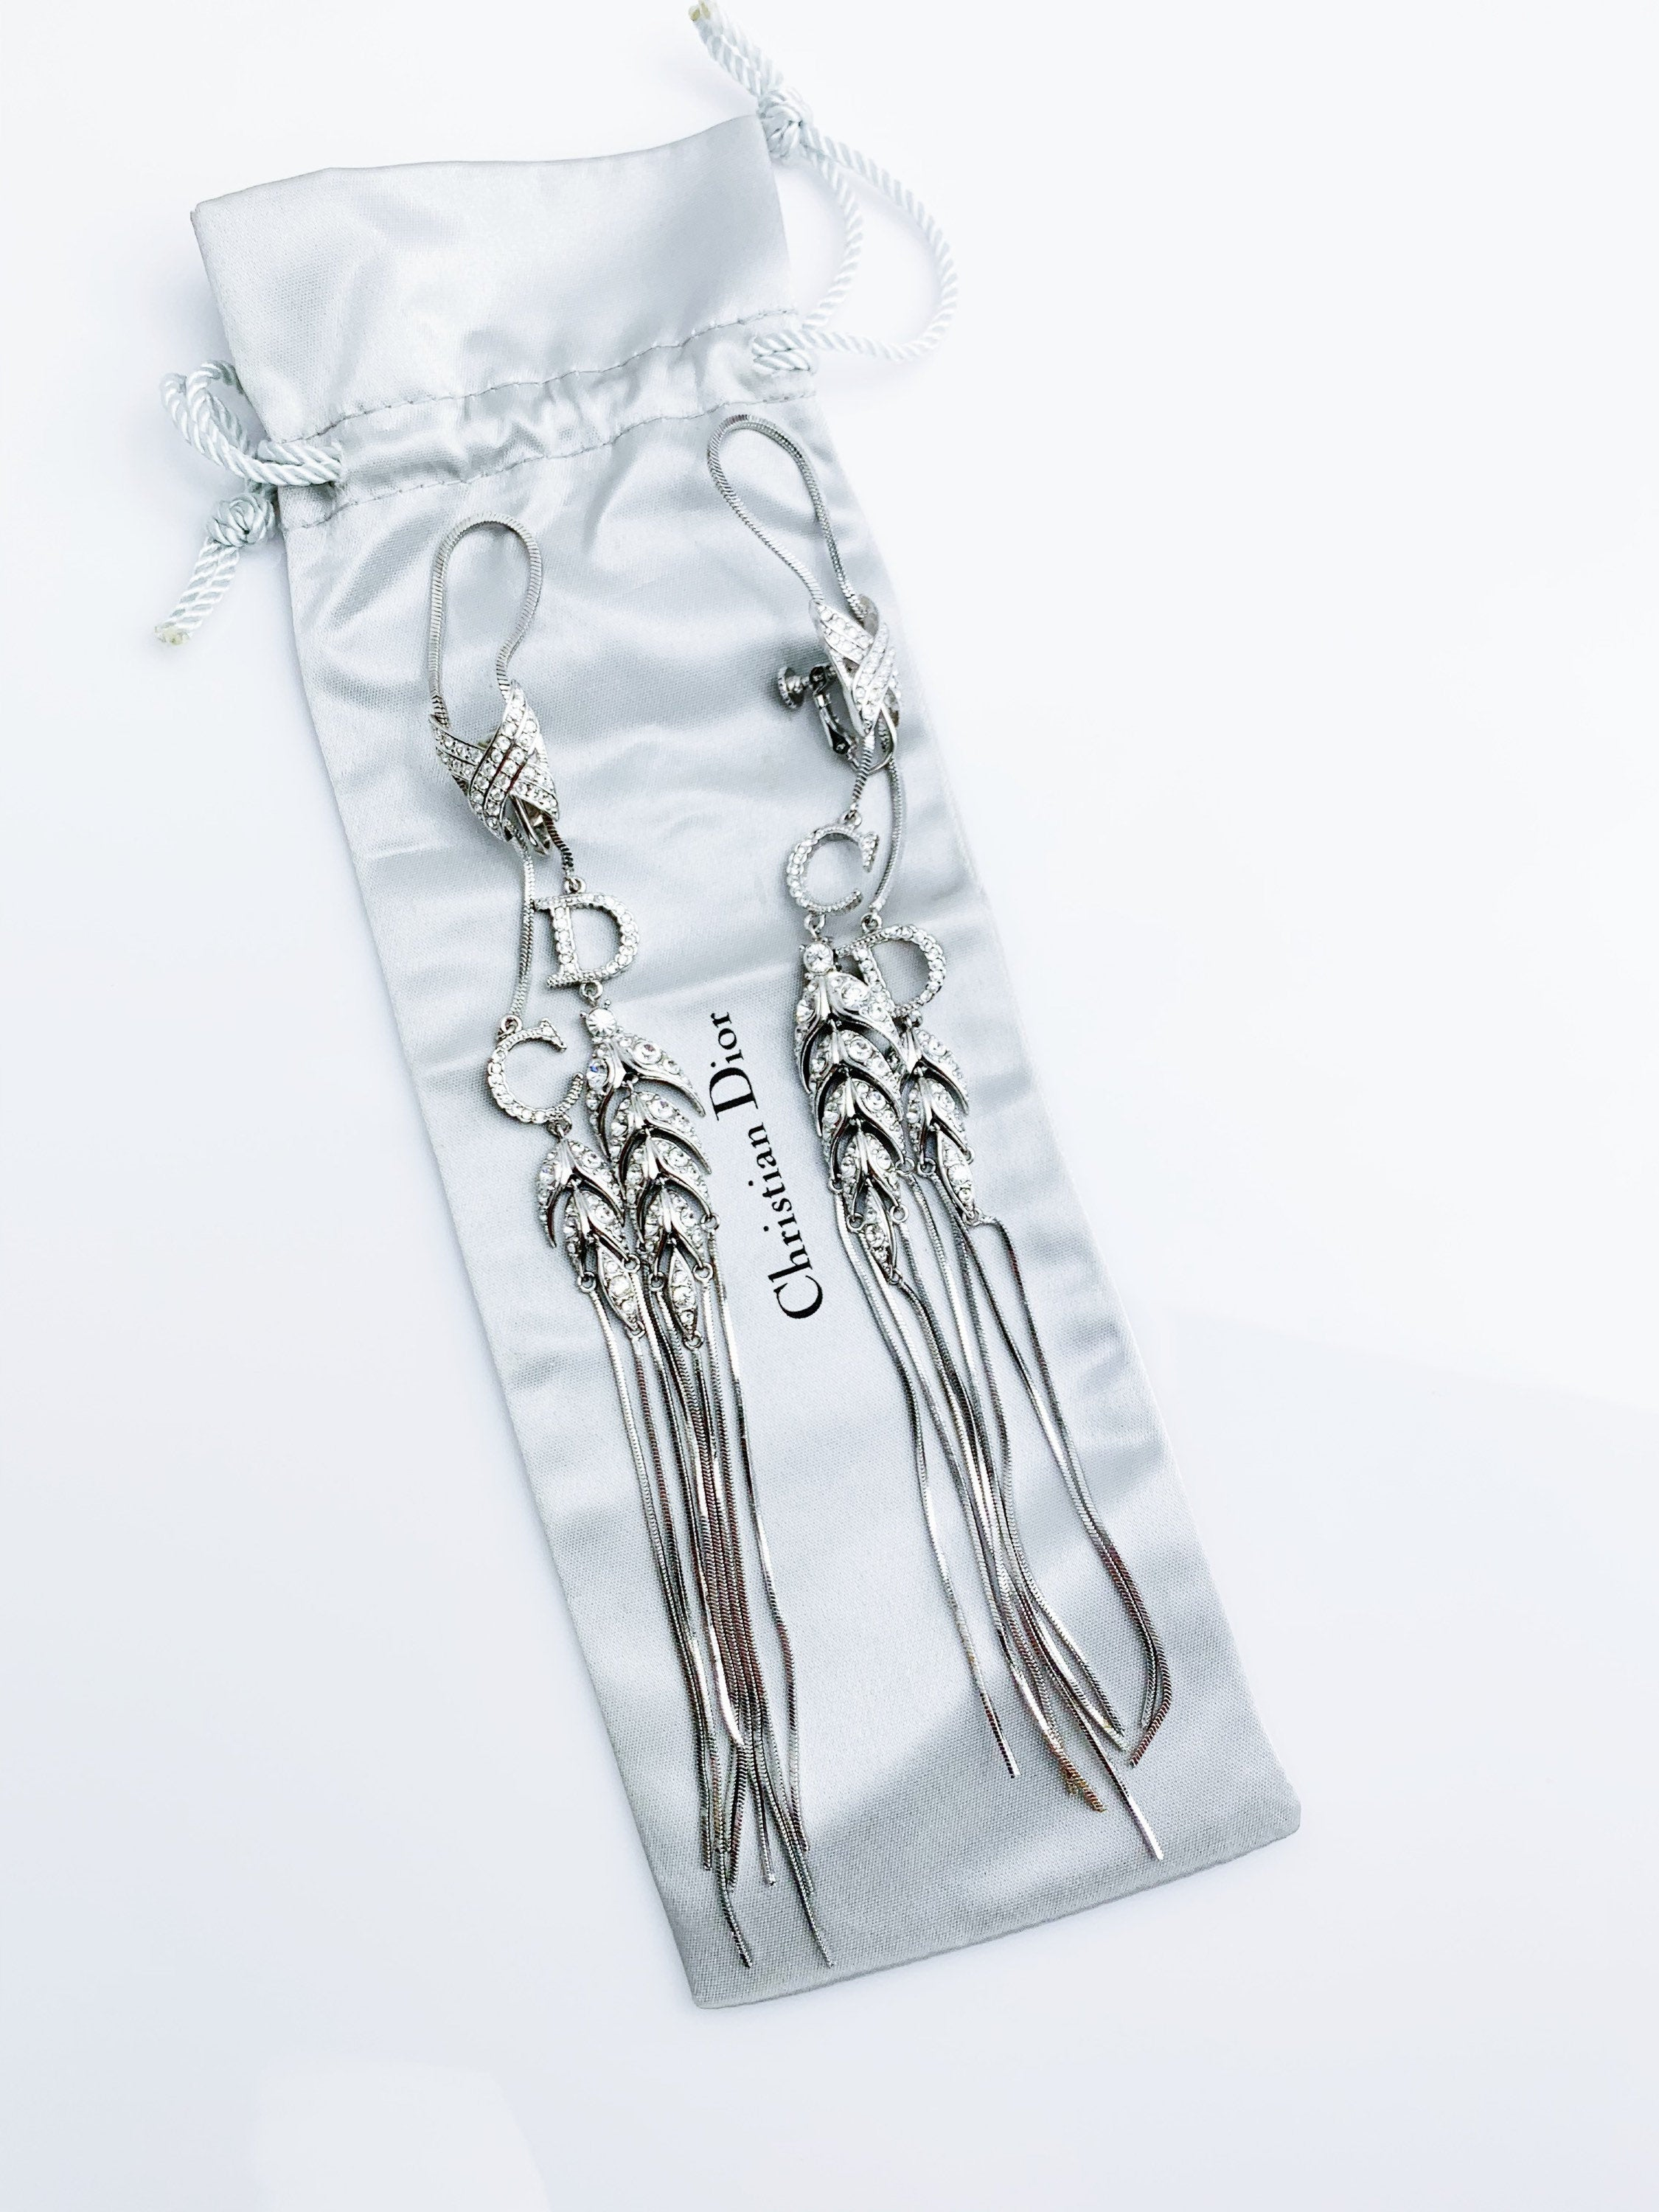 Rare collectible! Dior Spring 2003 RTW Runway Prototype Chandelier Earrings